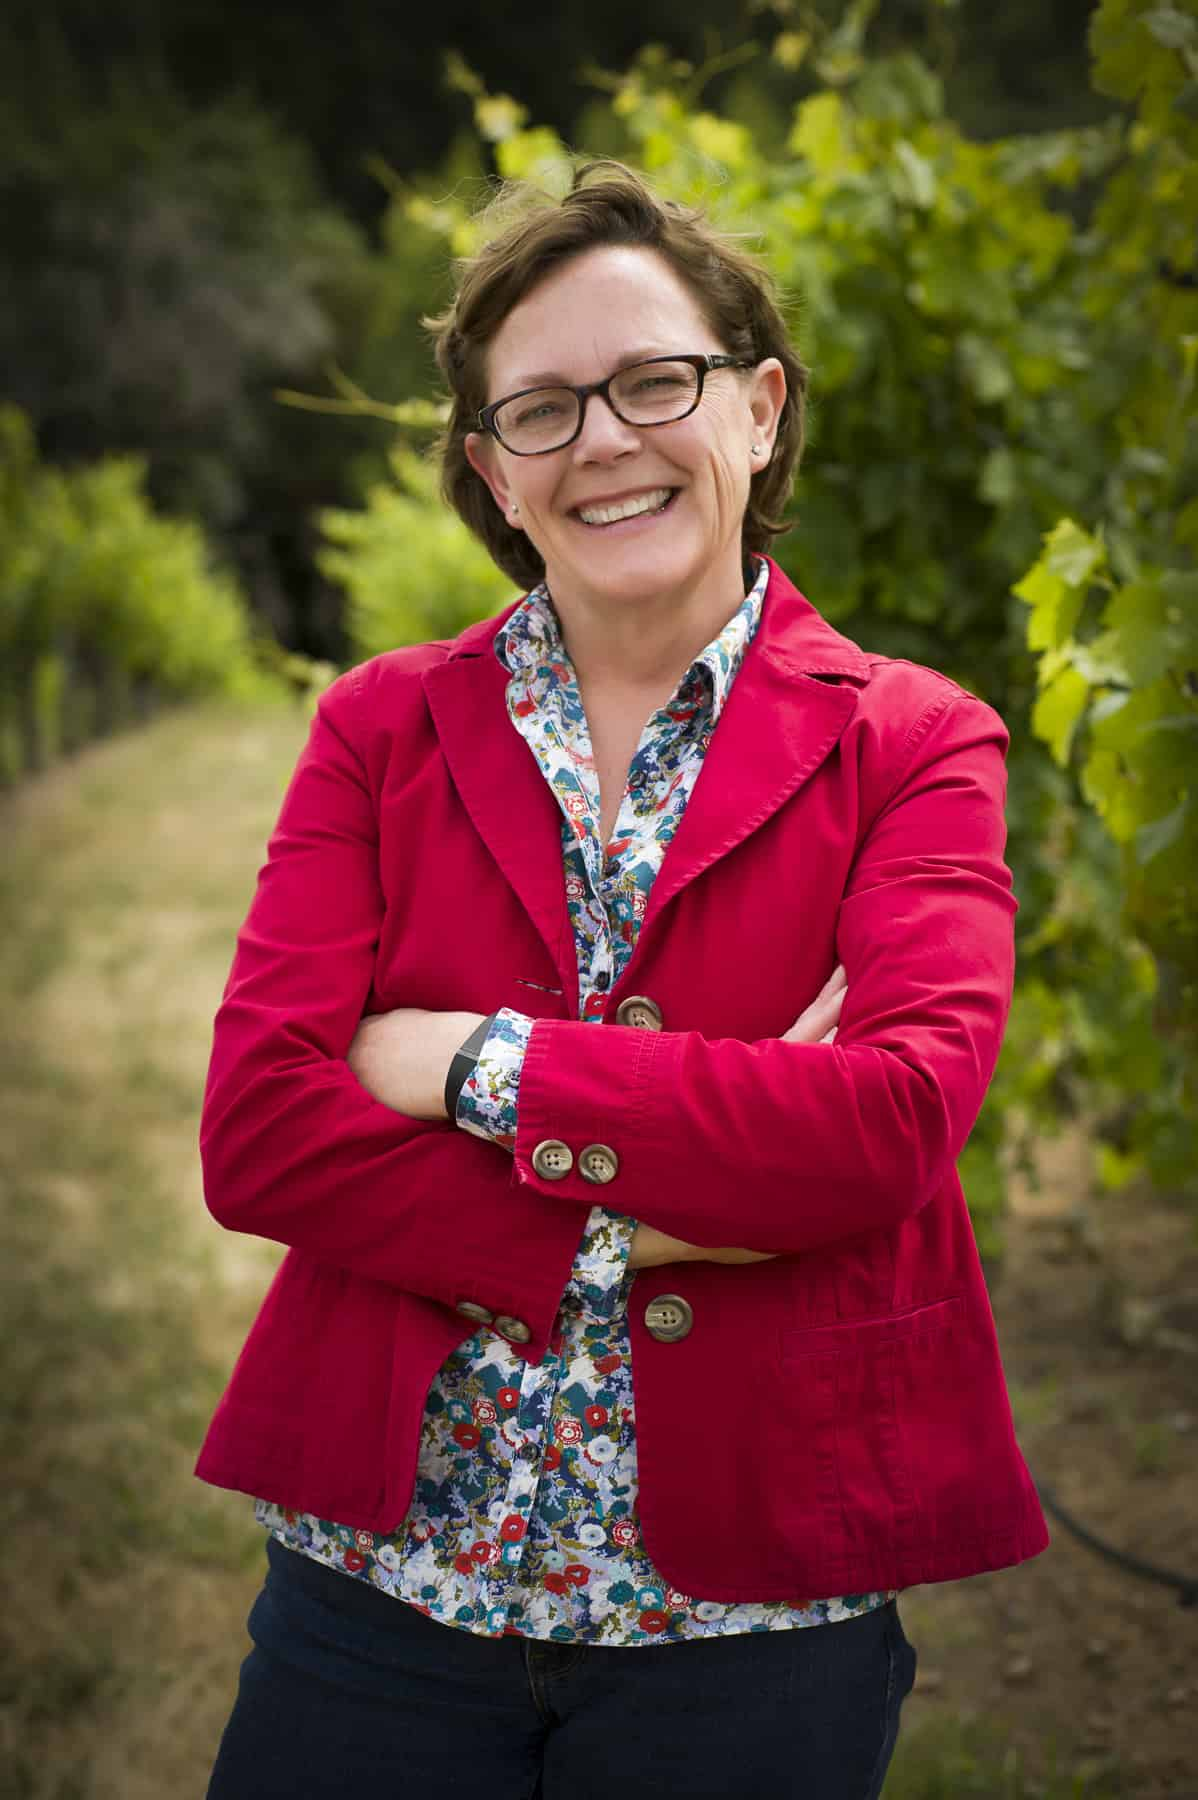 Meet a Winemaker:  Sandy Walheim of Virginia Dare Winery